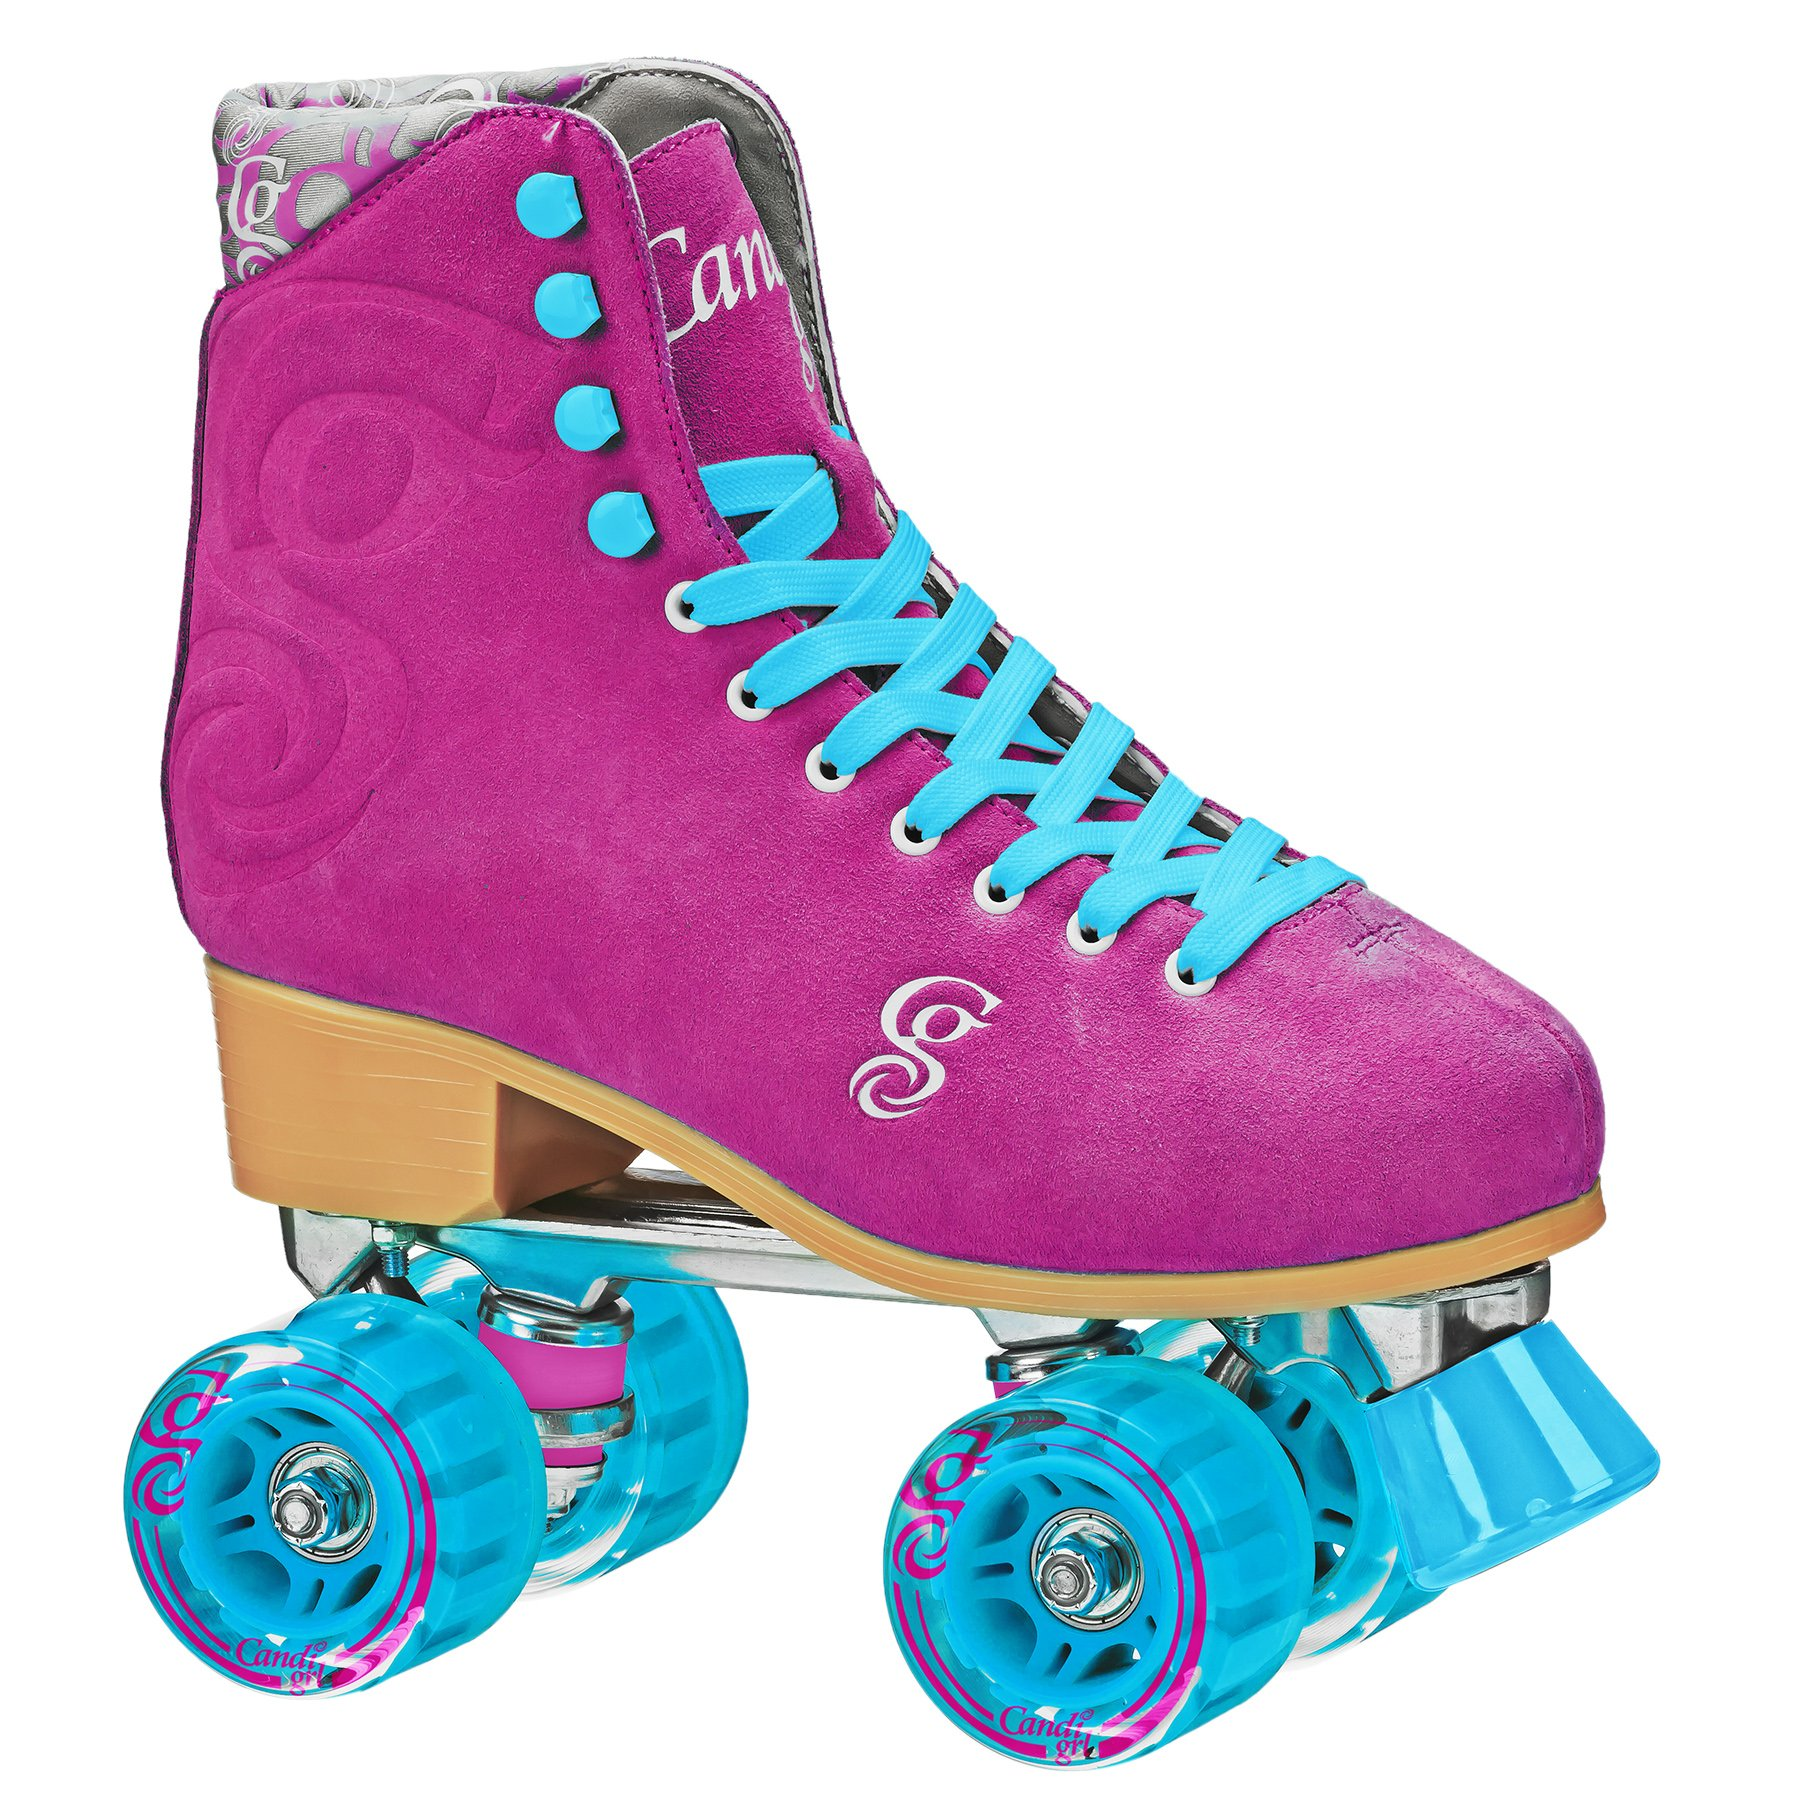 Roller Derby Candi Girl U774 Carlin Quad Artistic Roller Skates Raspberry Ladies sz 4